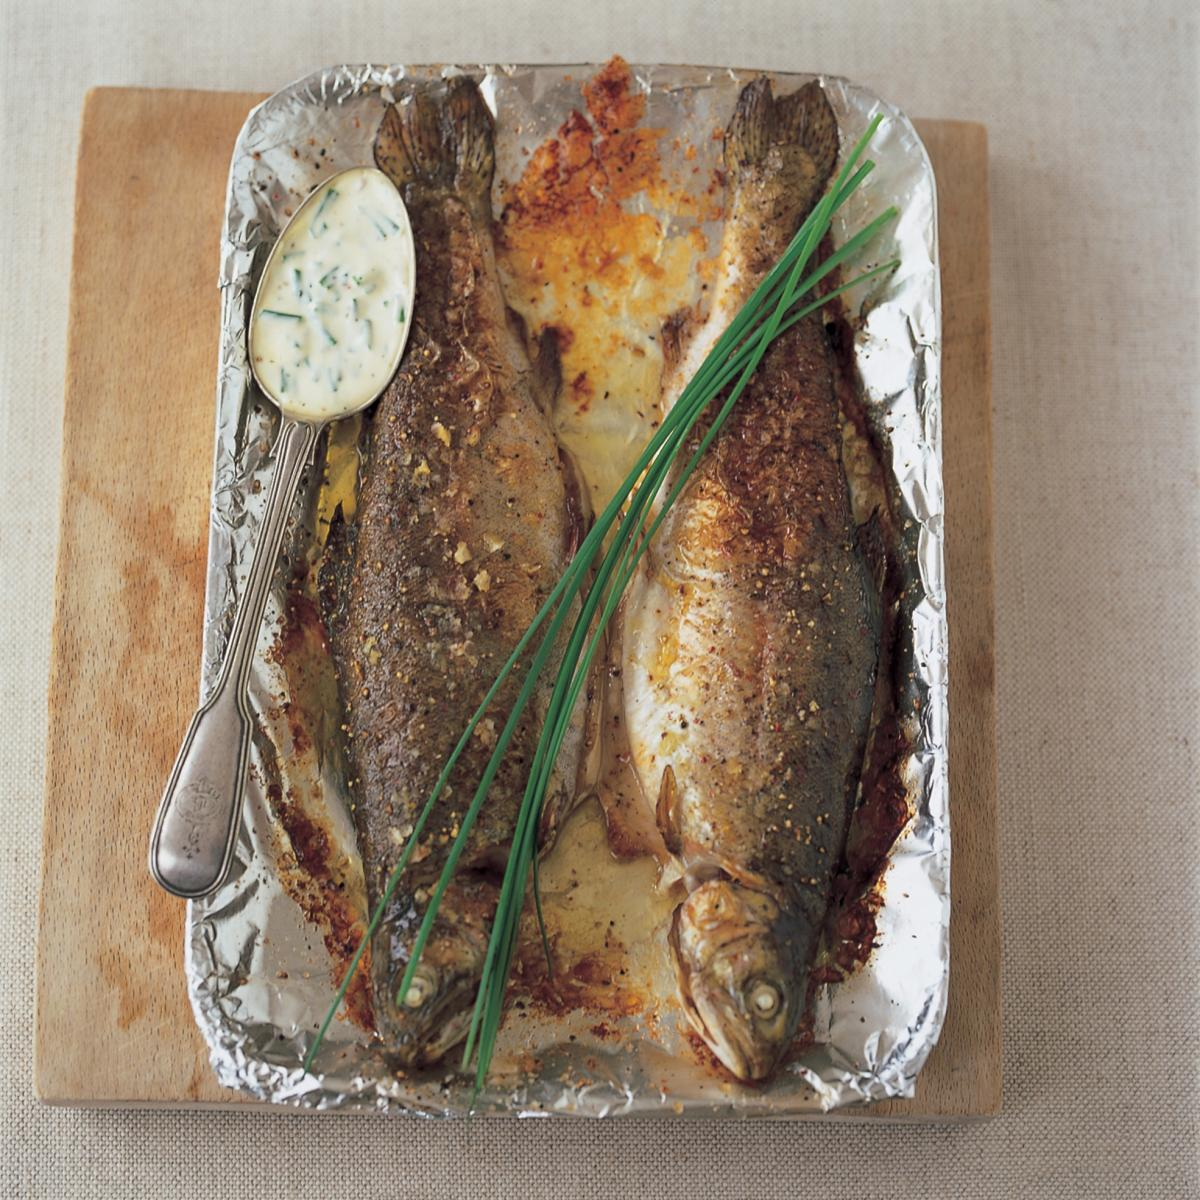 A picture of Delia's Trout with Butter, Creme Fraiche and Chives recipe